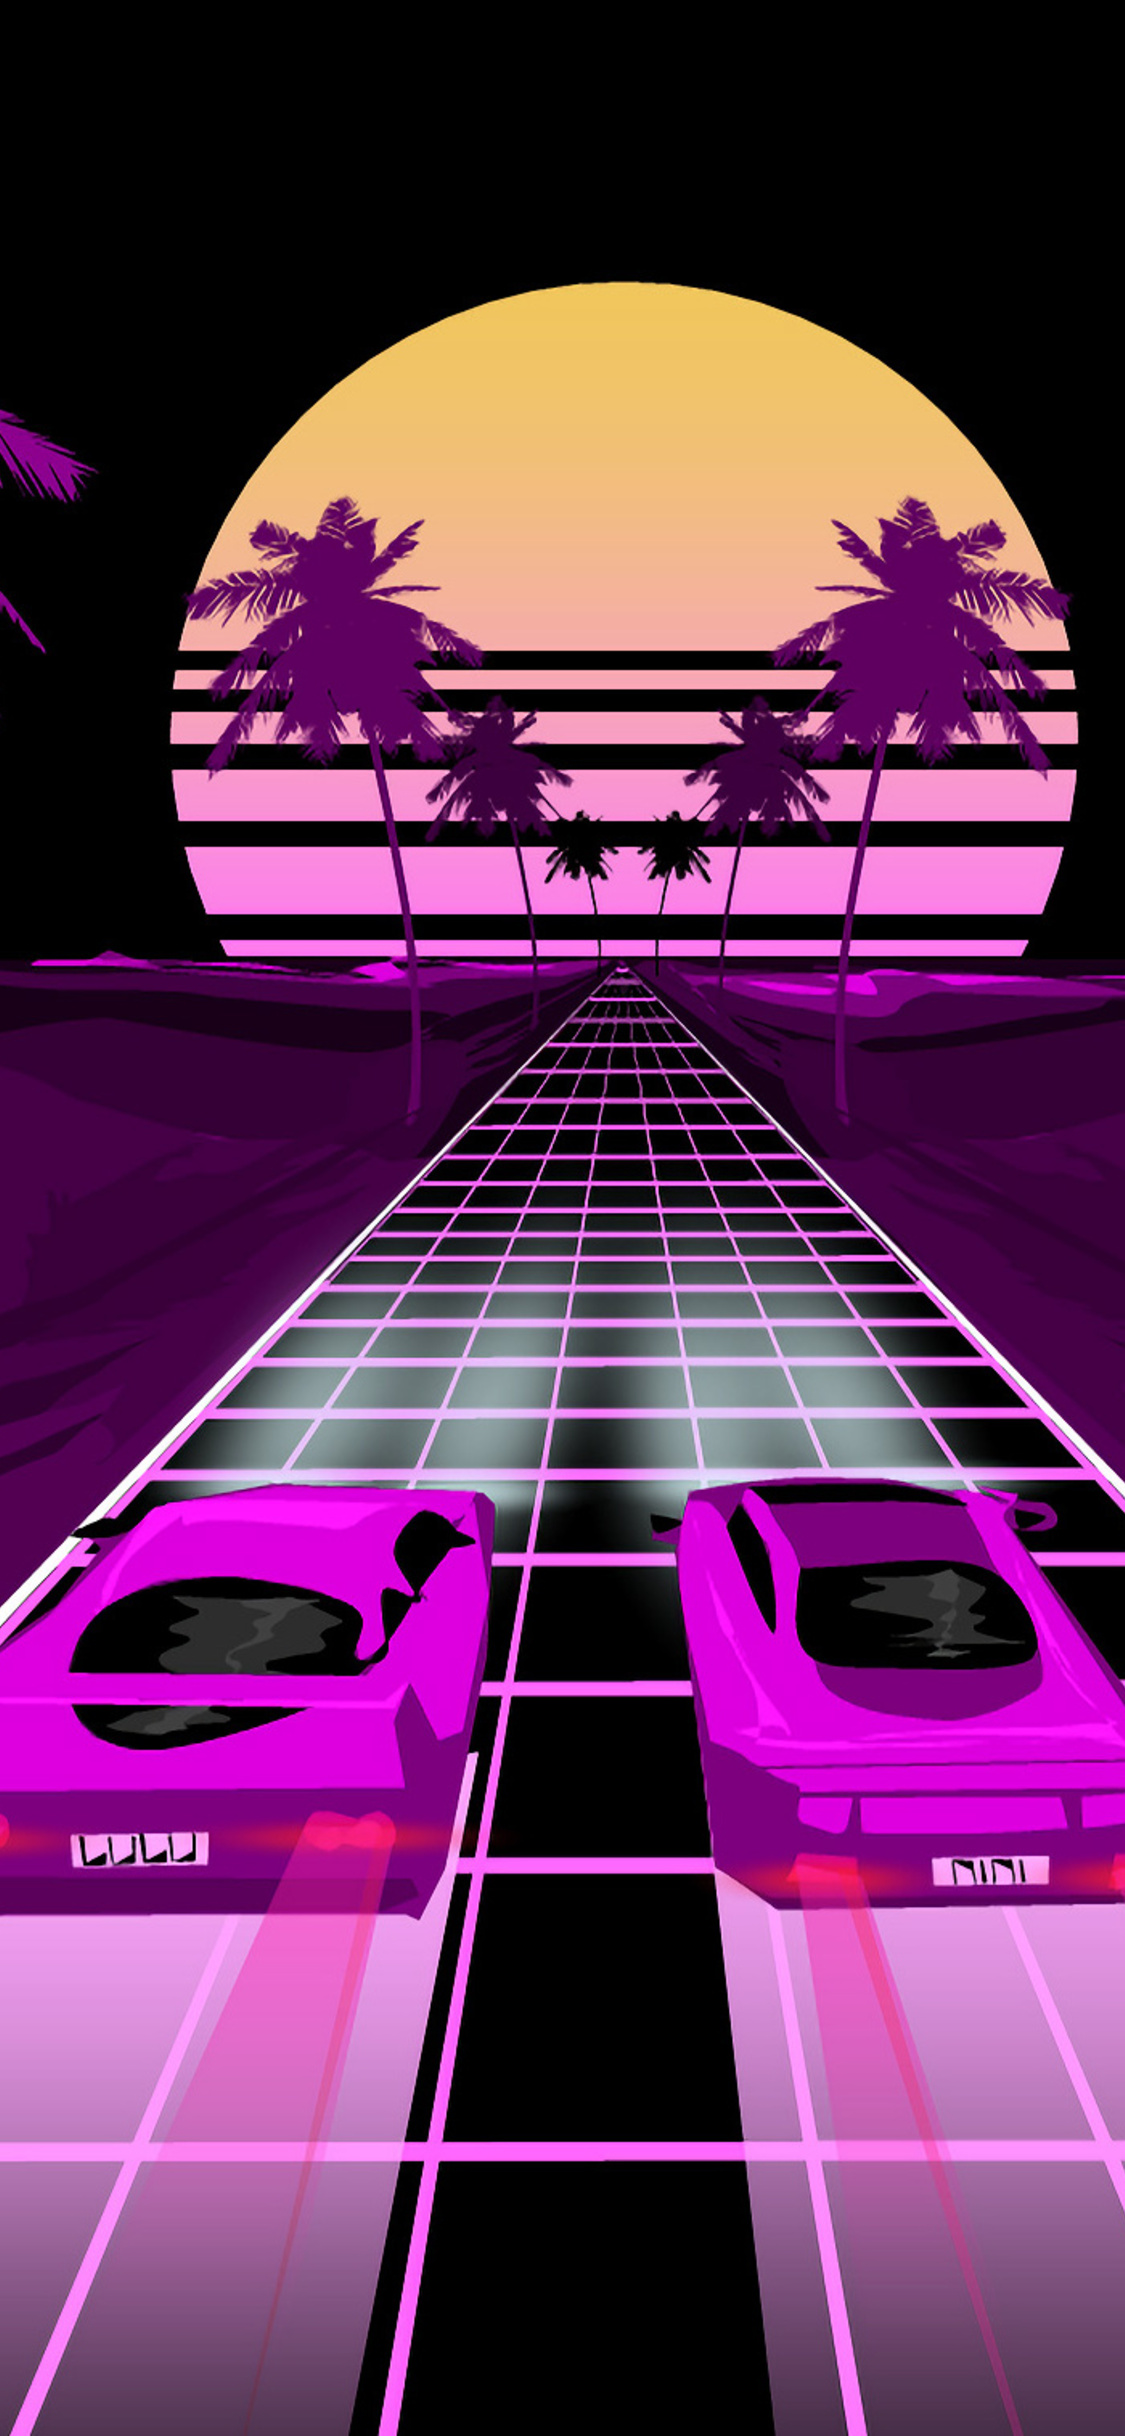 1125x2436 Two Sports Car Retrowave Art Iphone XS,Iphone 10 ...